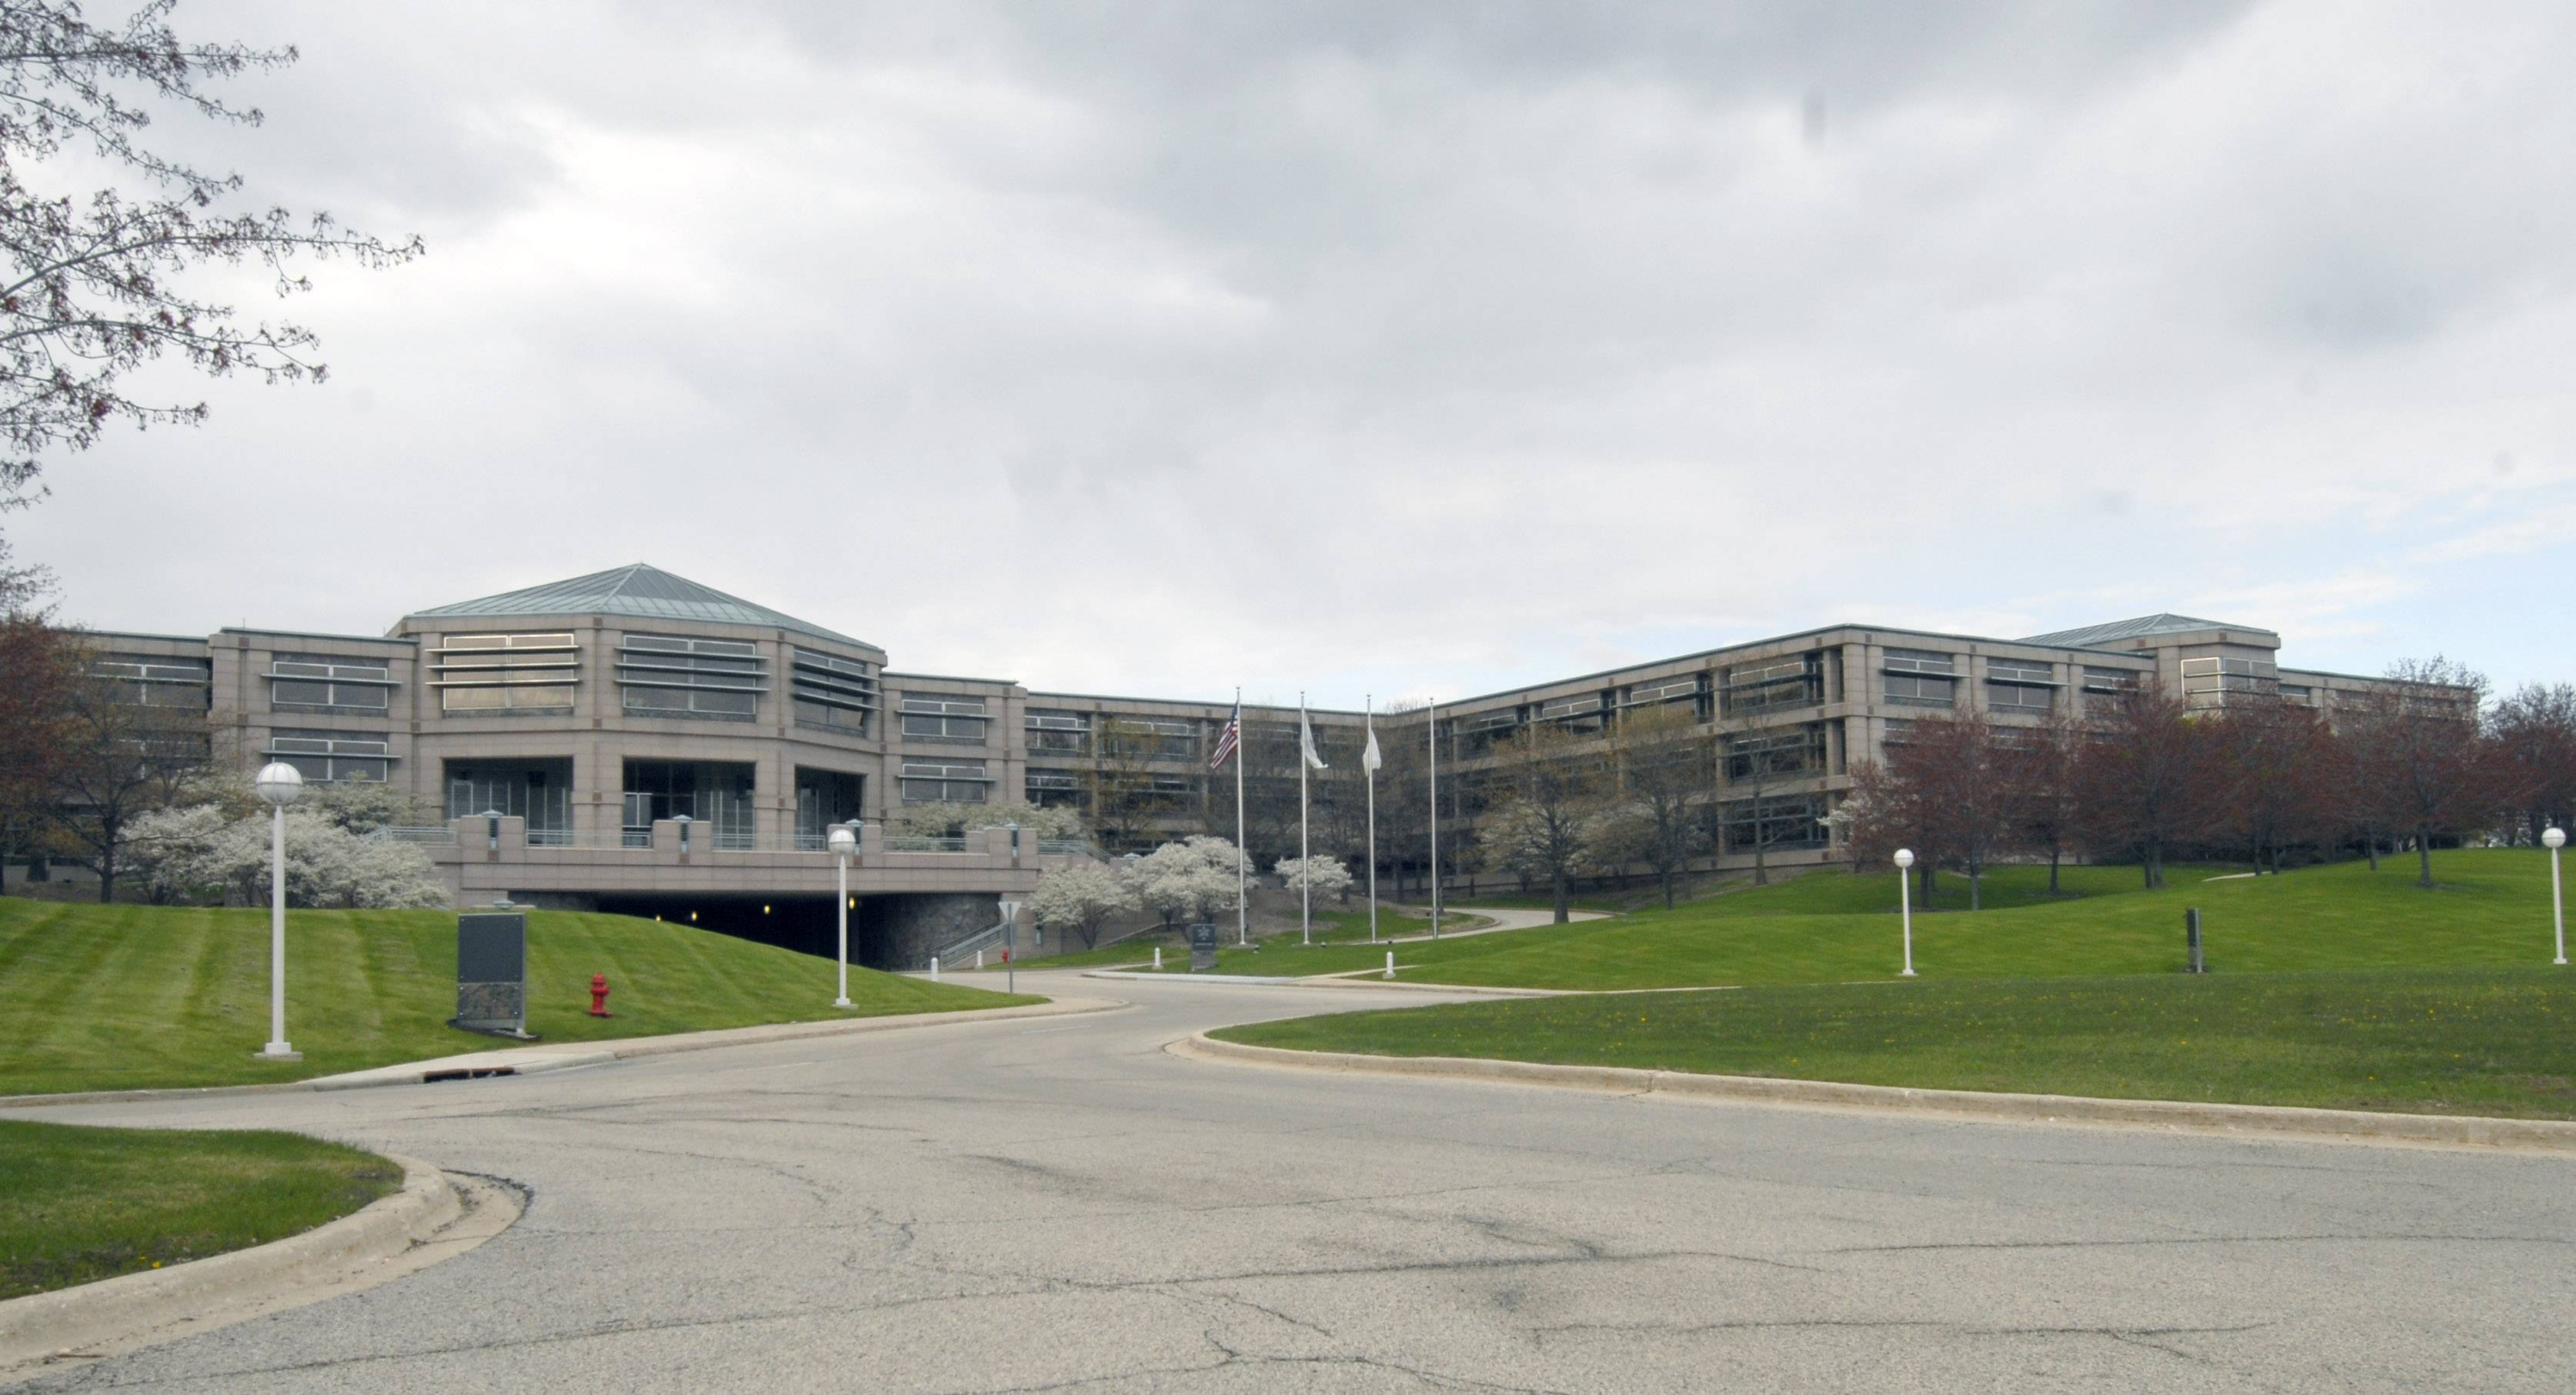 A New Jersey-based developer has filed a concept plan for the 1.6-million-square-foot AT&T campus in Hoffman Estates, based on work still in progress on the former 2-million-square-foot Bell Labs building in Holmdel, New Jersey.